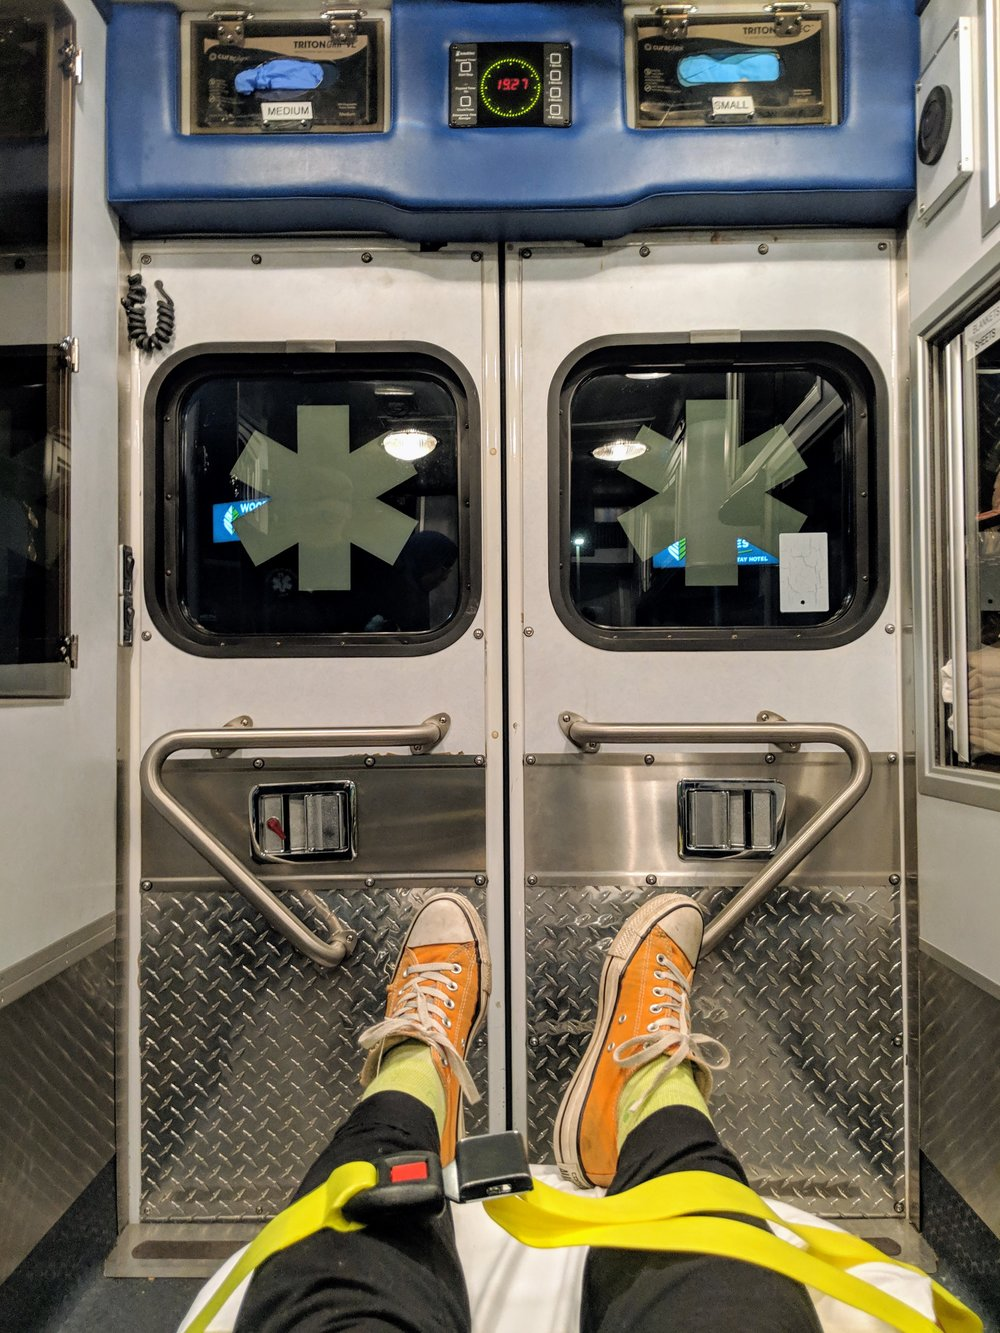 I am that person who takes a picture in an ambulance. Anxiety makes me do weird things, like nervously ask my EMTs about their personal lives. They were really sweet, btw.